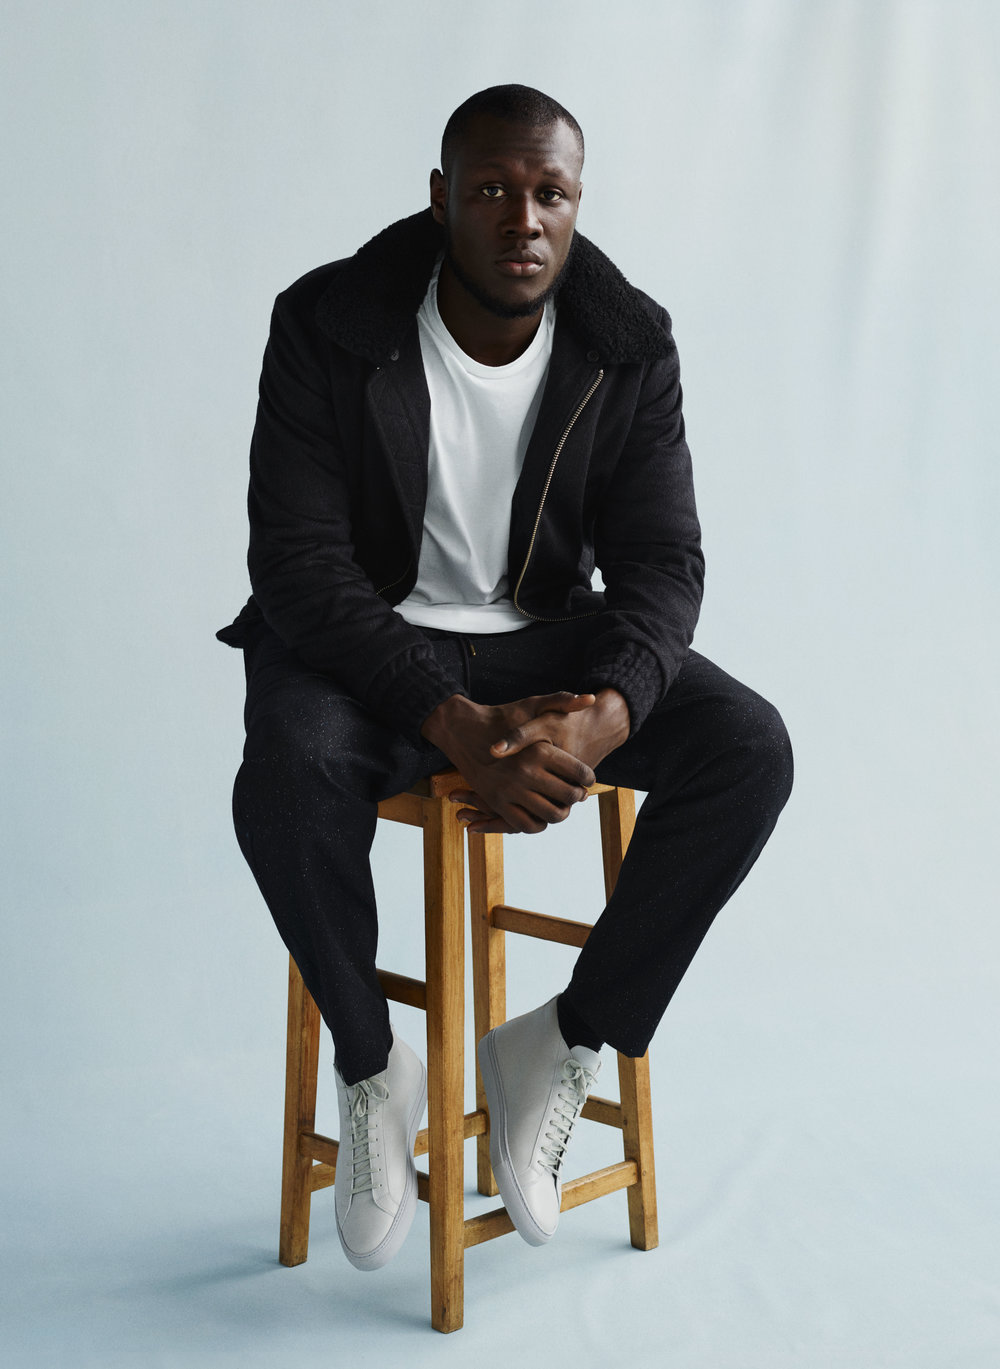 Stormzy_shot_by_Mr_Stefan_Heinrichs_ljced2.jpg